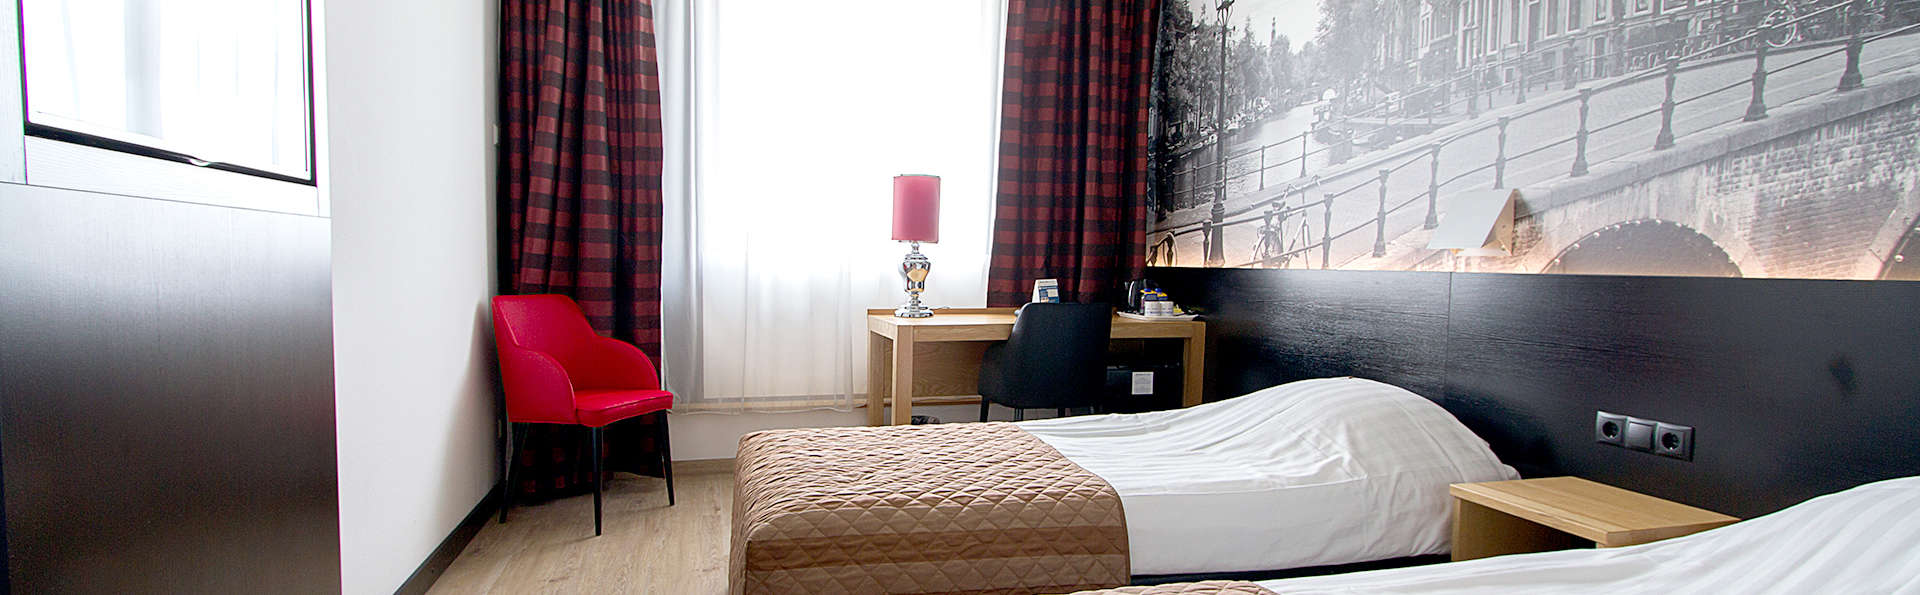 Bastion Hotel Amsterdam Zuidwest - Edit_Room3.jpg